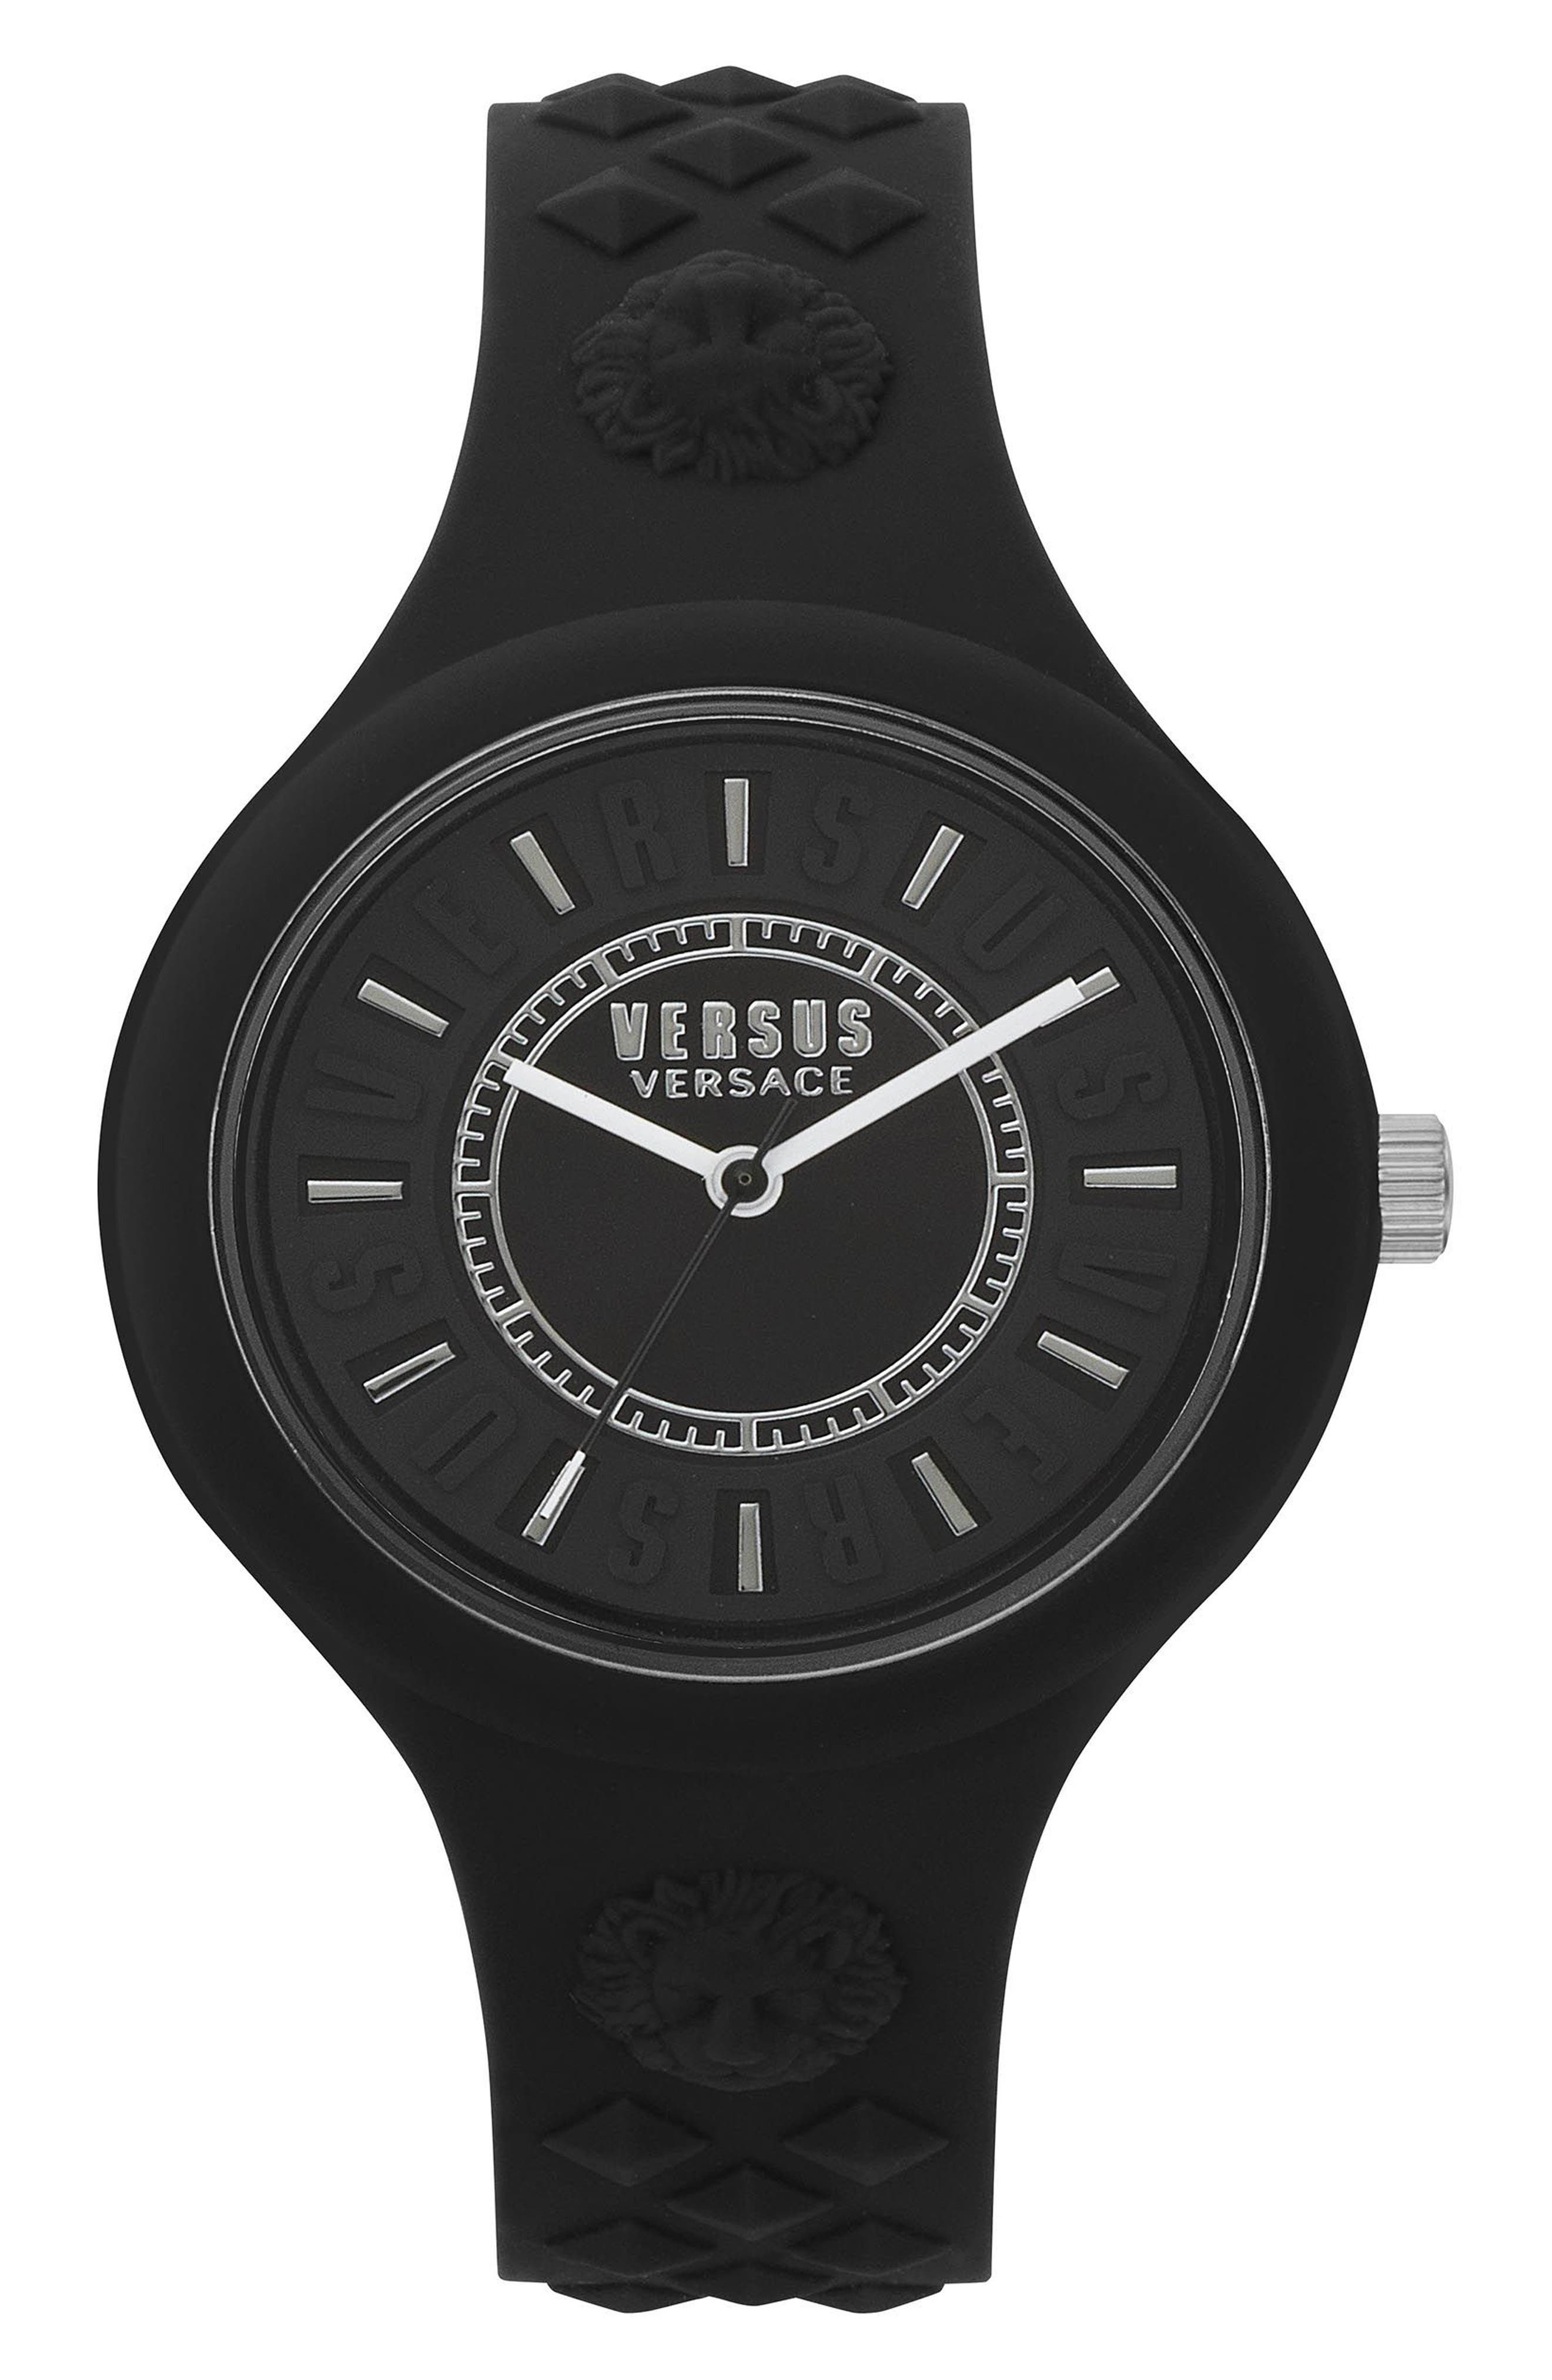 VERSUS VERSACE, Fire Island Silicone Strap Watch, 39mm, Main thumbnail 1, color, BLACK/ WHITE